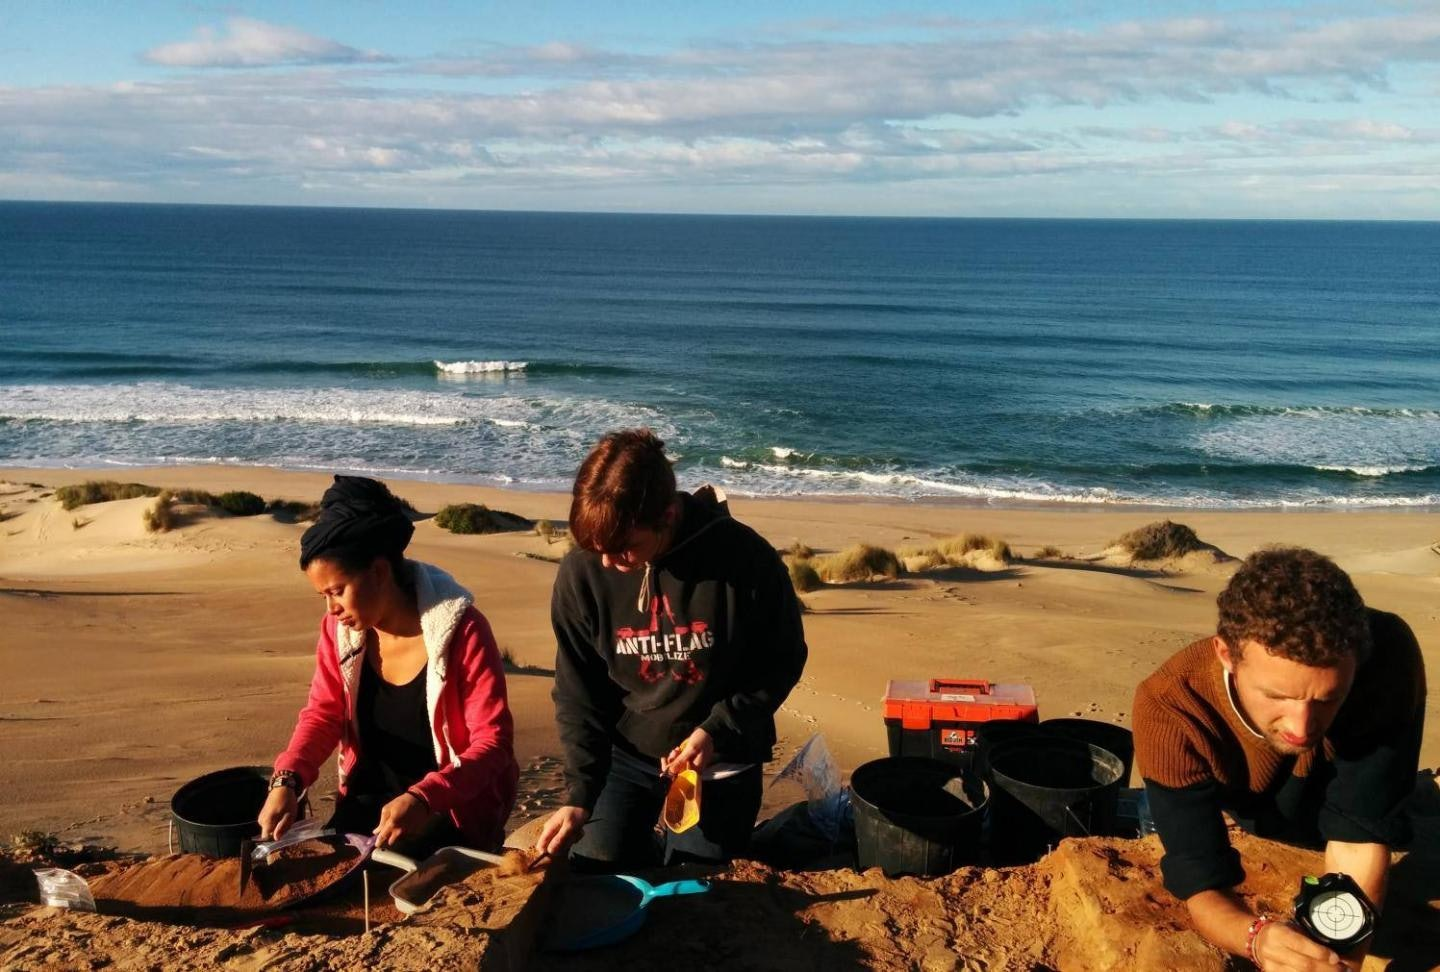 Students excavating one of the dig sites in South Africa.